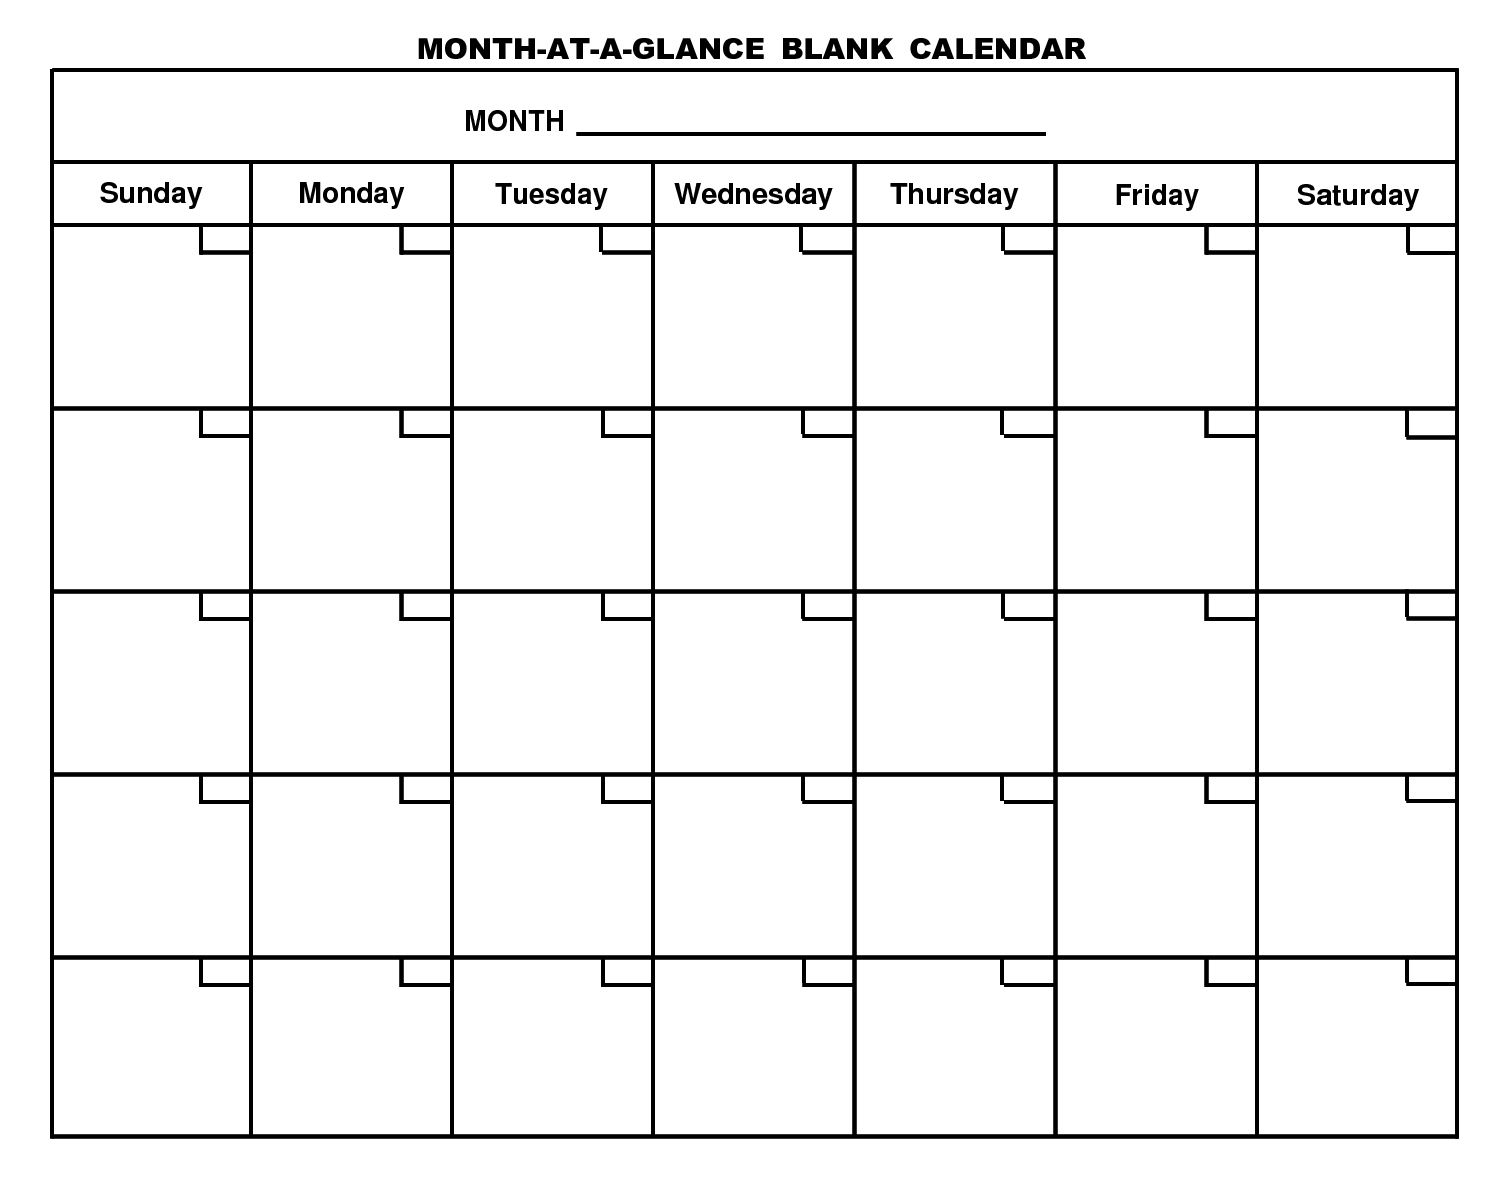 Schedule Template Printable Blank Ar E2 80 A6 Organizing Pinte within Printable Blank Calendar Pages For September